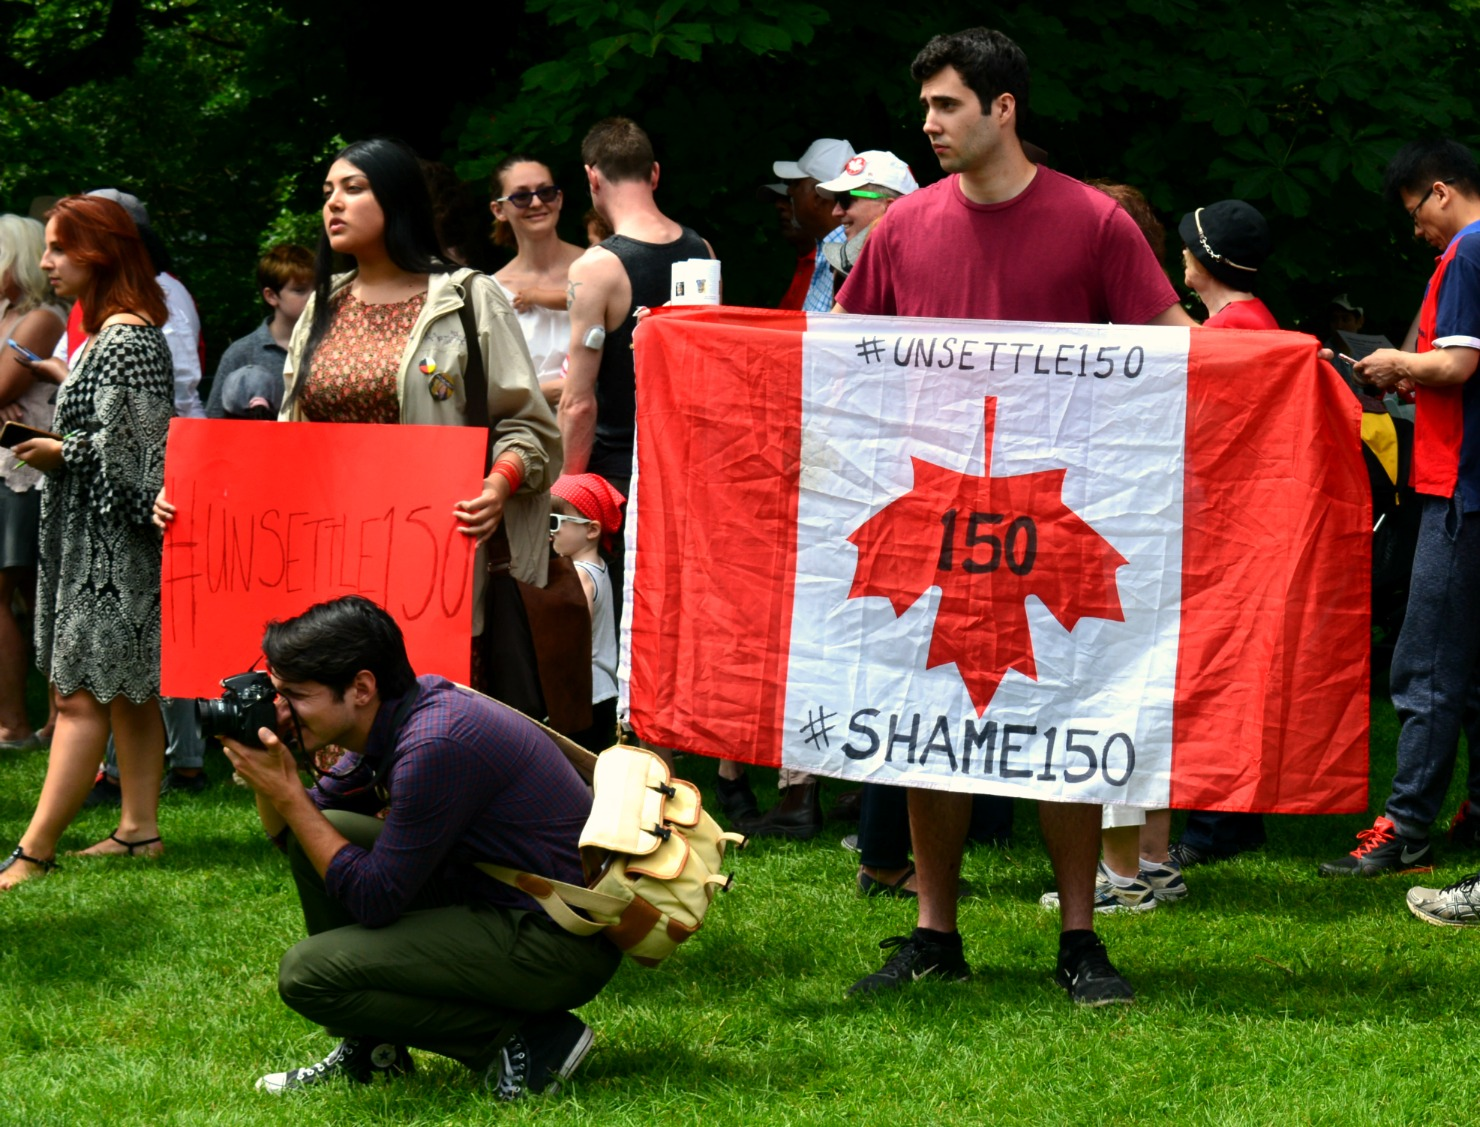 Canada Flag is held upside down with the words #shame150 written on it.